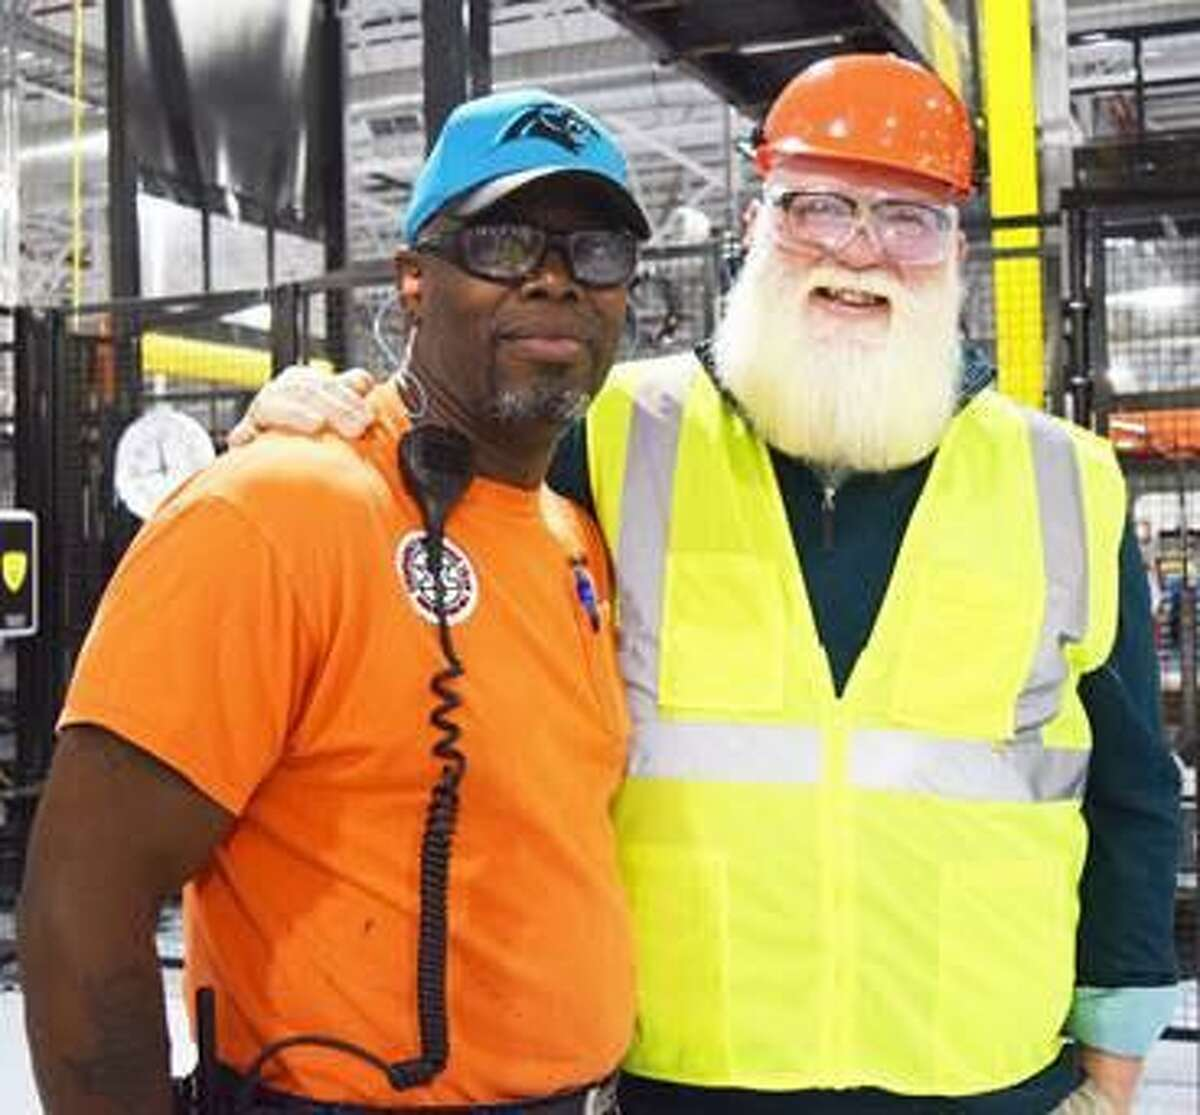 State Representative Bill Buckbee (R-67th) recently took a tour of the Kimberly-Clark mill in New Milford. During his tour, Buckbee was reunited with New Milford High School classmate David Taft, left.